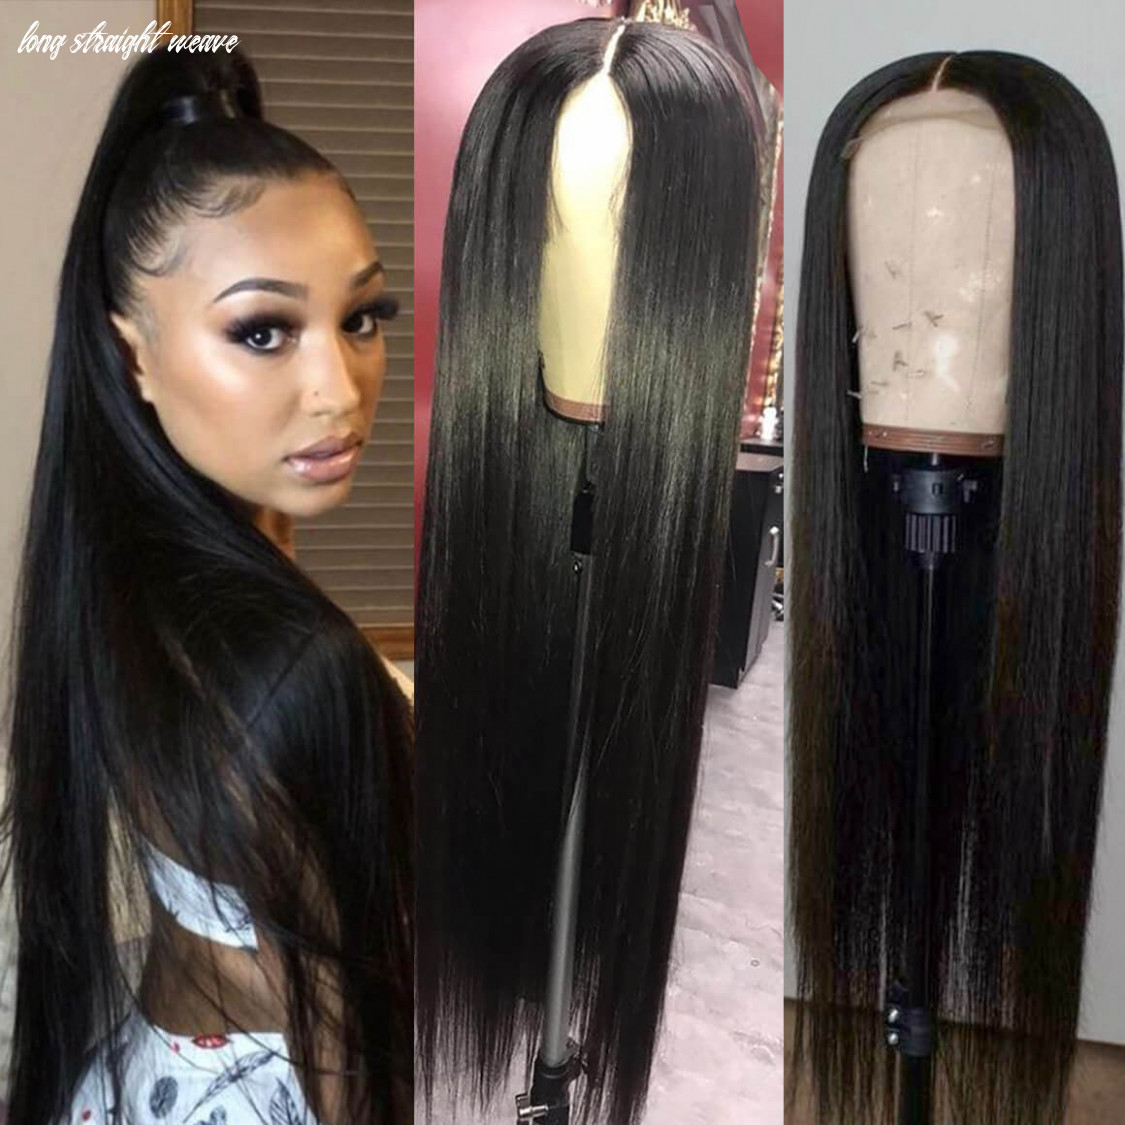 9 9inch long straight hair wigs for women human hair lace front wig long straight weave